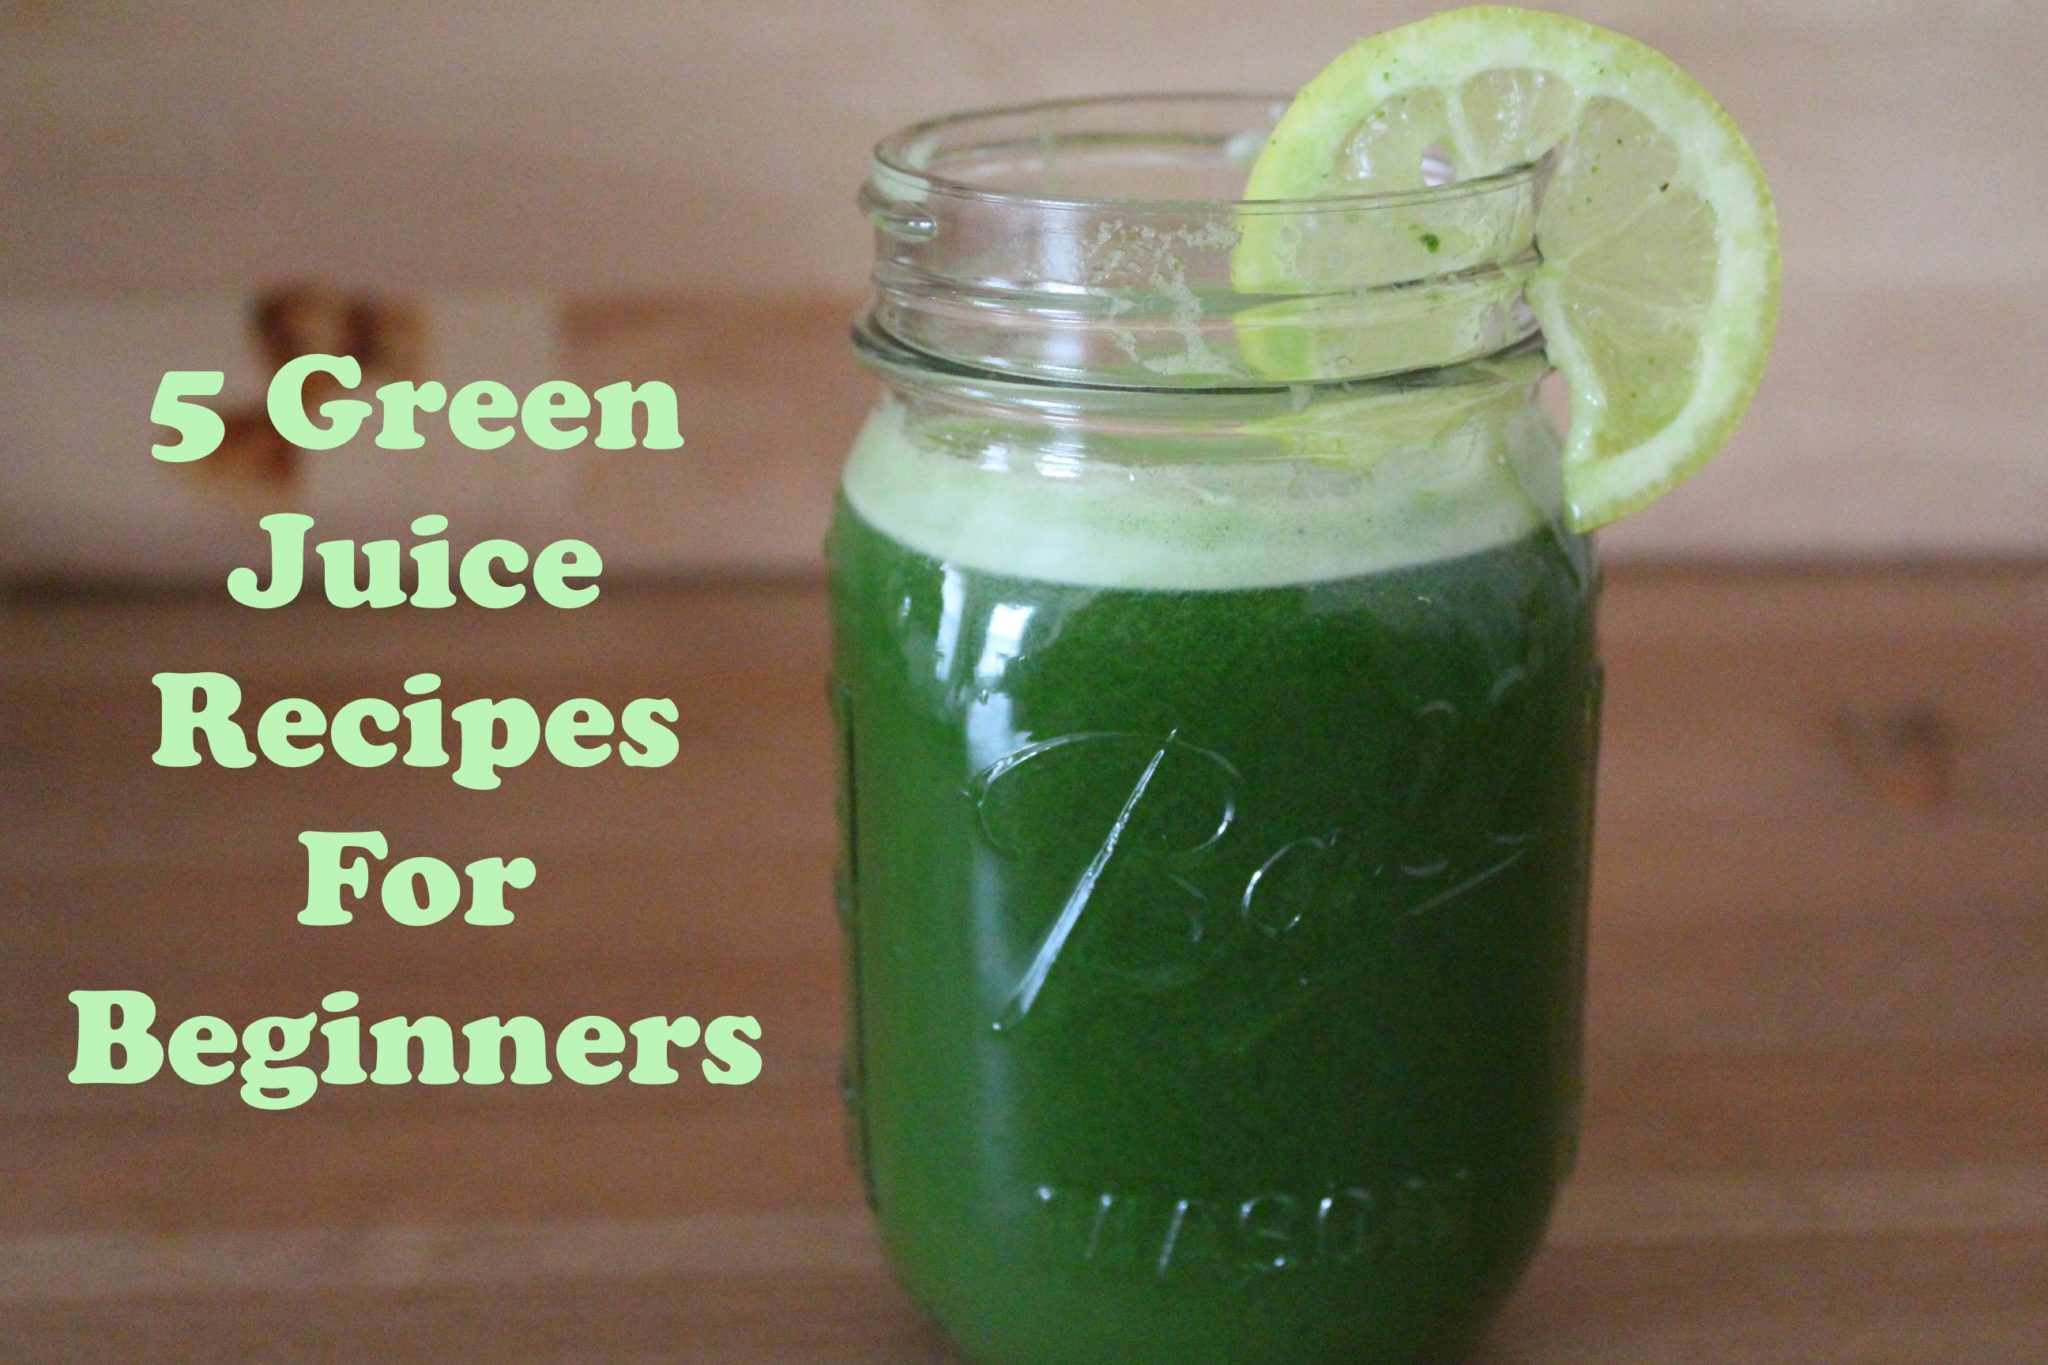 5 Green Juice Recipes For Beginners